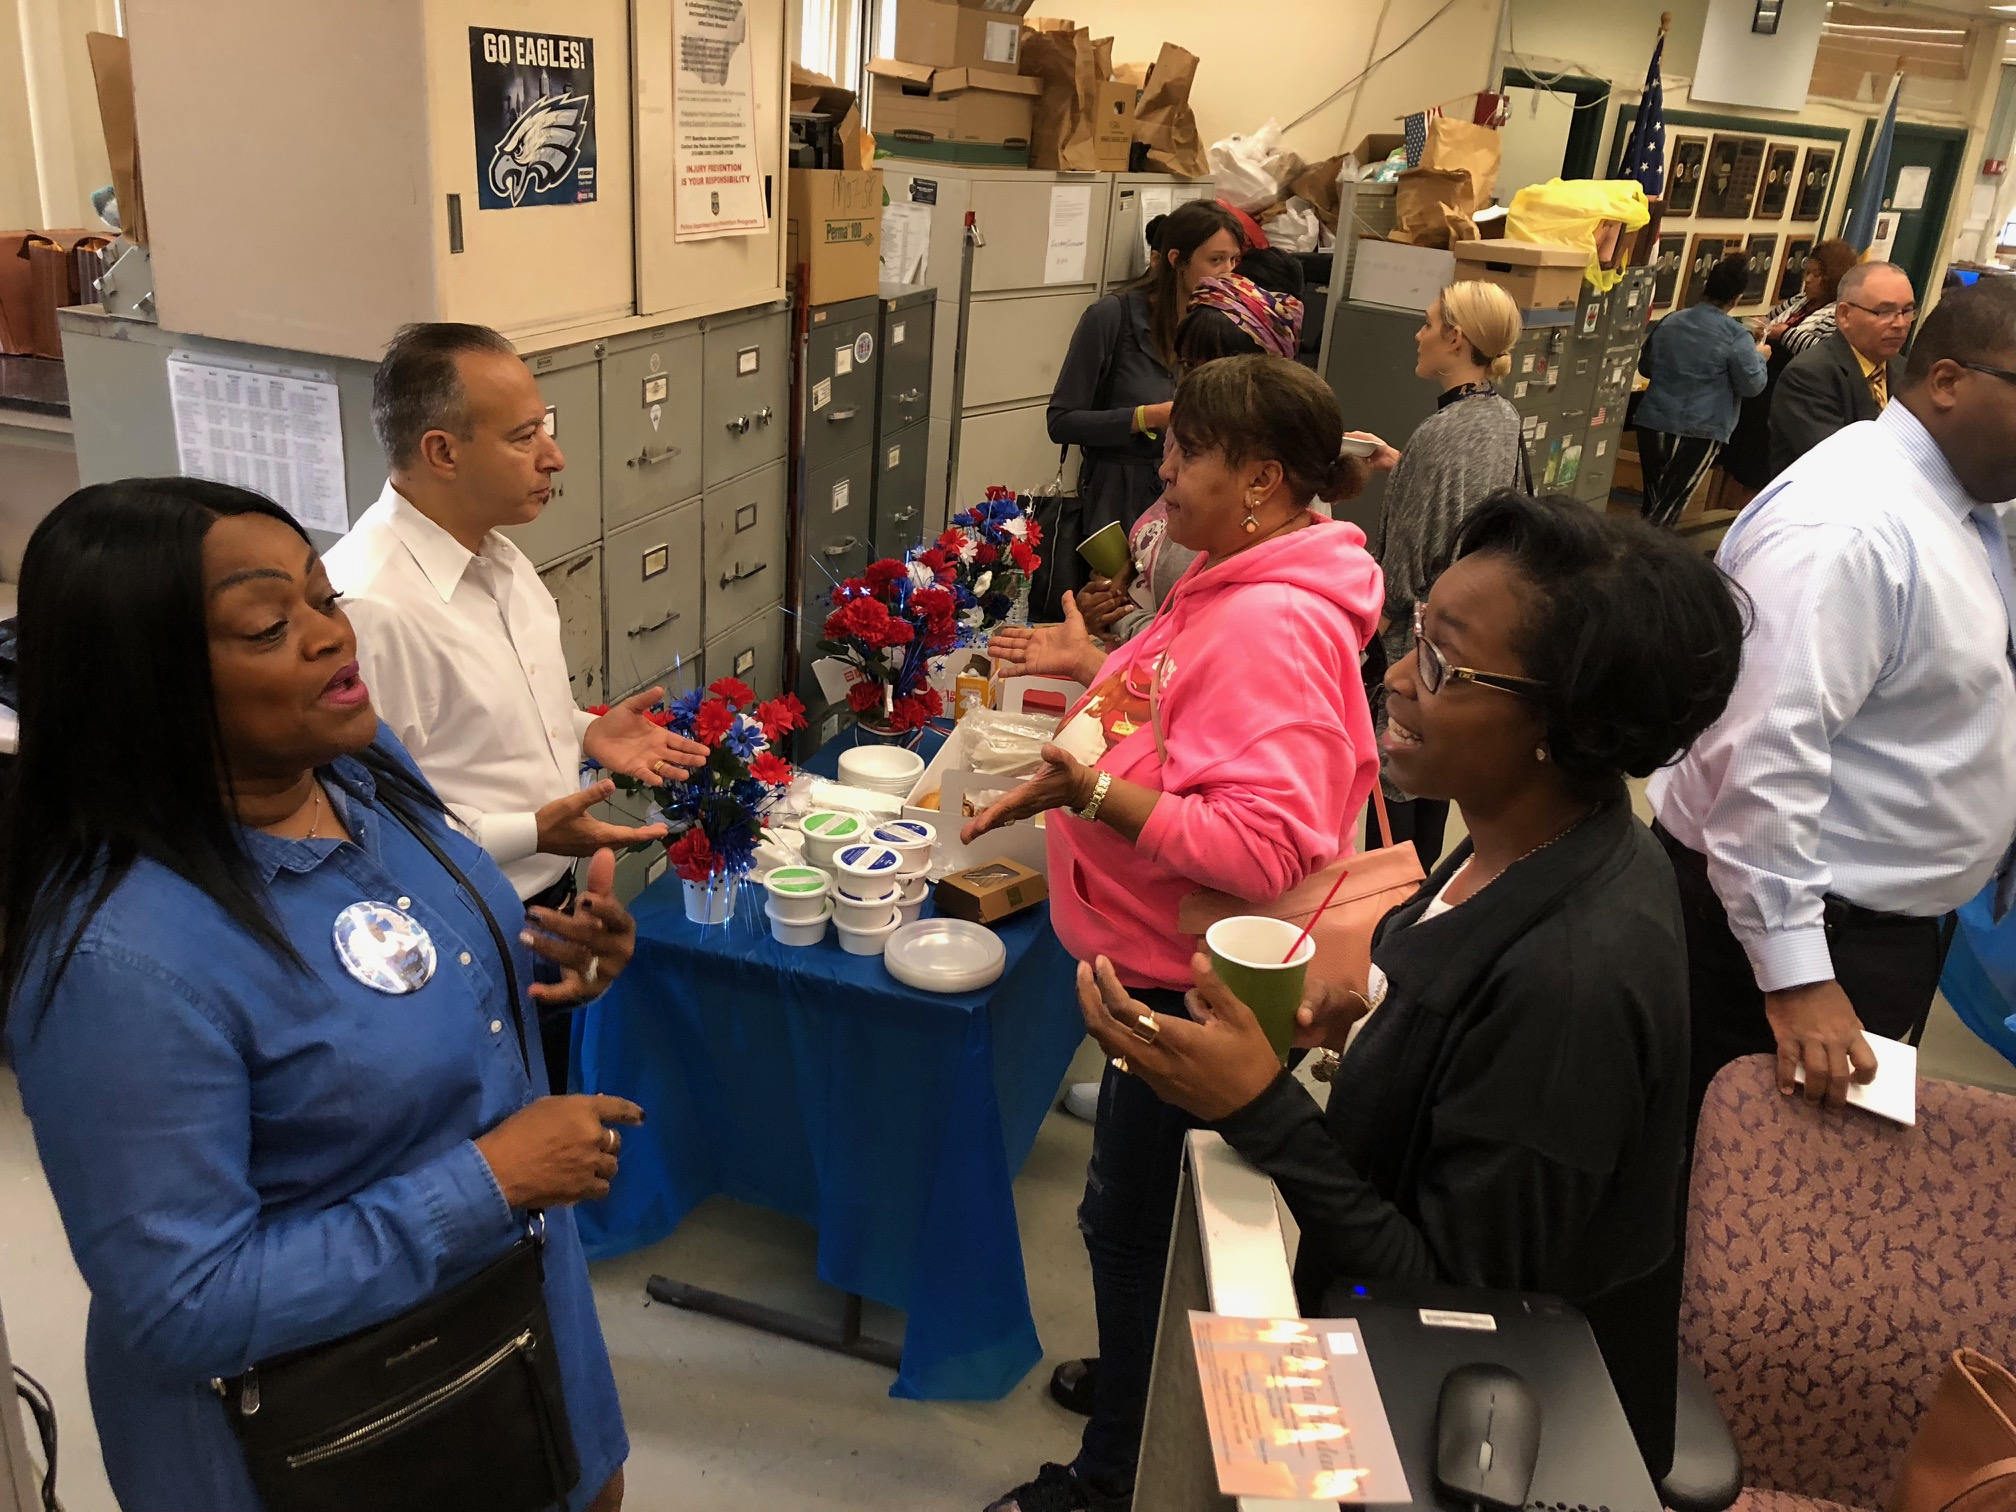 At a recent breakfast at Philadelphia´s homicide unit, detectives and loved ones of homicide victims gathered to meet and bond over coffee and bagels. Pictured in the blue shirt is Yullio Robbins whose son was killed in 2016 and behind her, the detective working on the case Gregory Santamala.